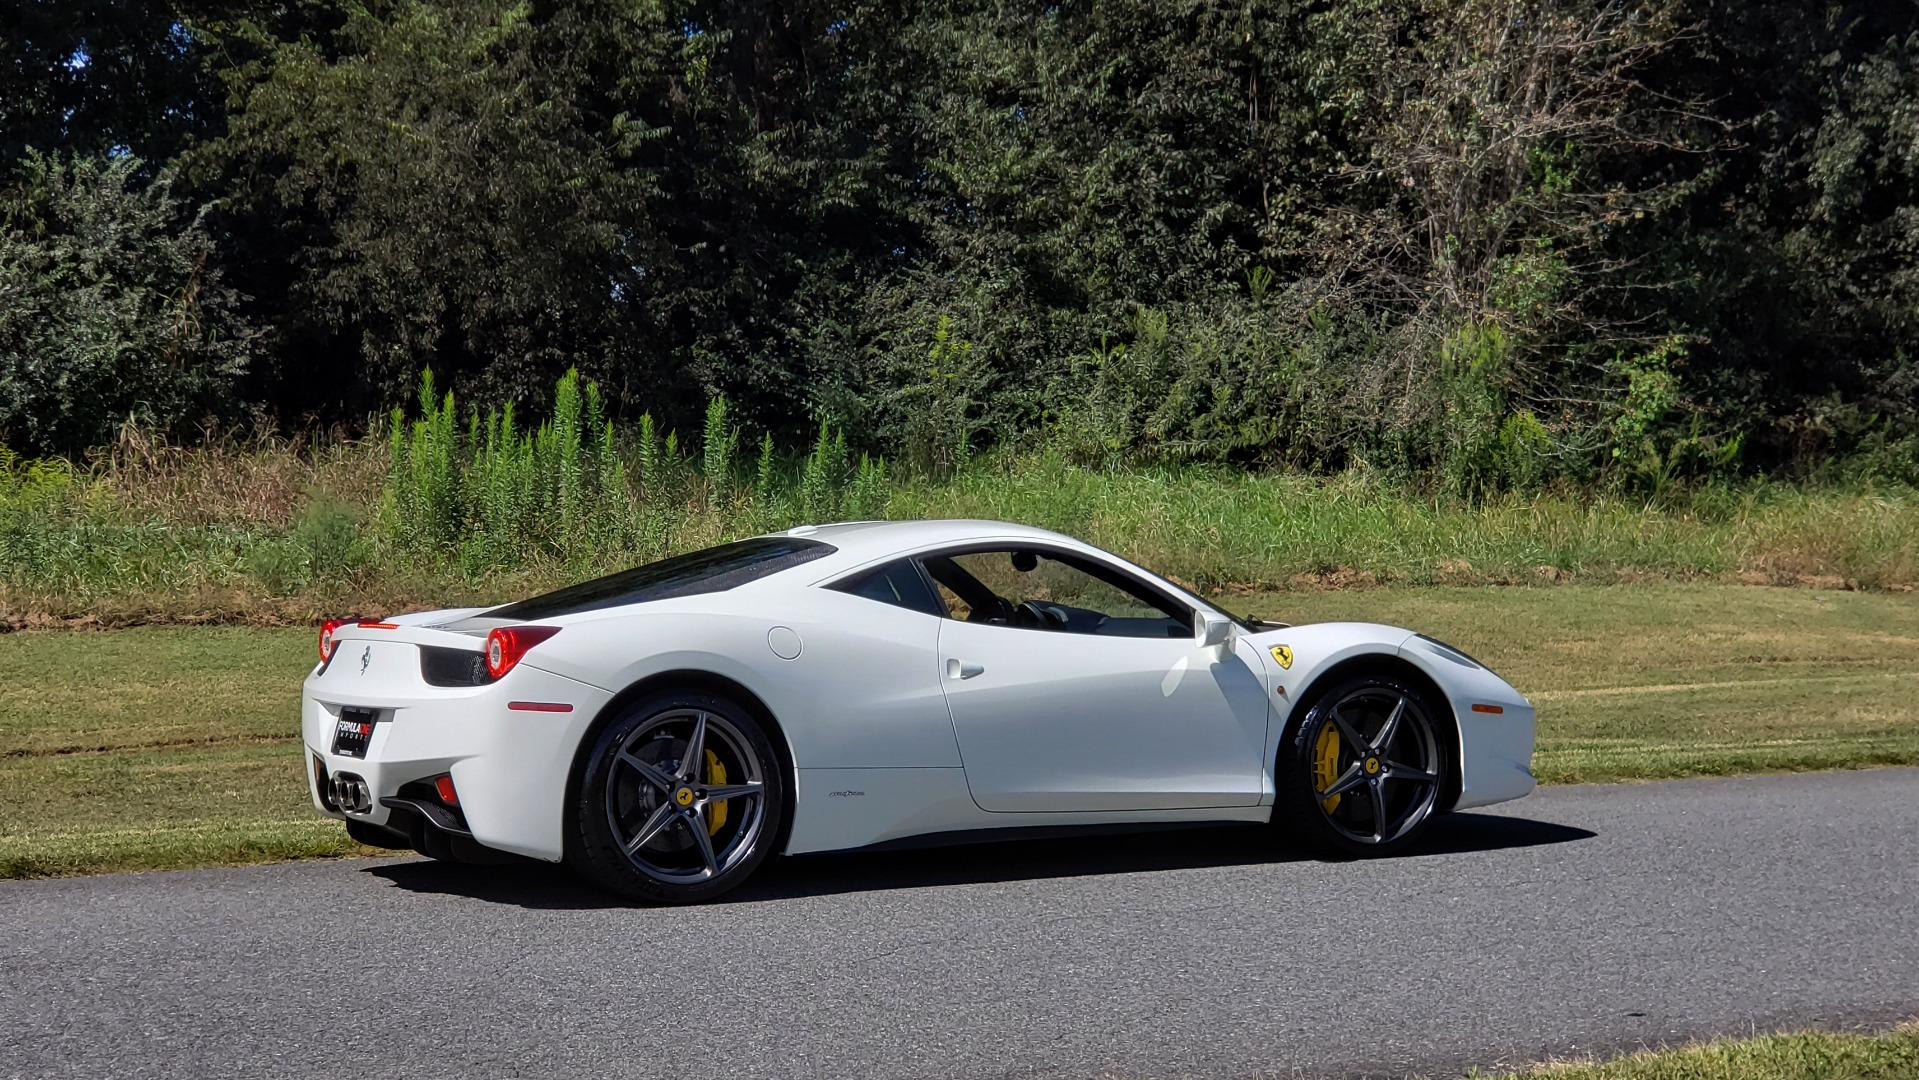 Used 2012 Ferrari 458 ITALIA COUPE / 4.5L V8 / 7-SPEED AUTO / LOW MILES SUPER CLEAN for sale $169,999 at Formula Imports in Charlotte NC 28227 13